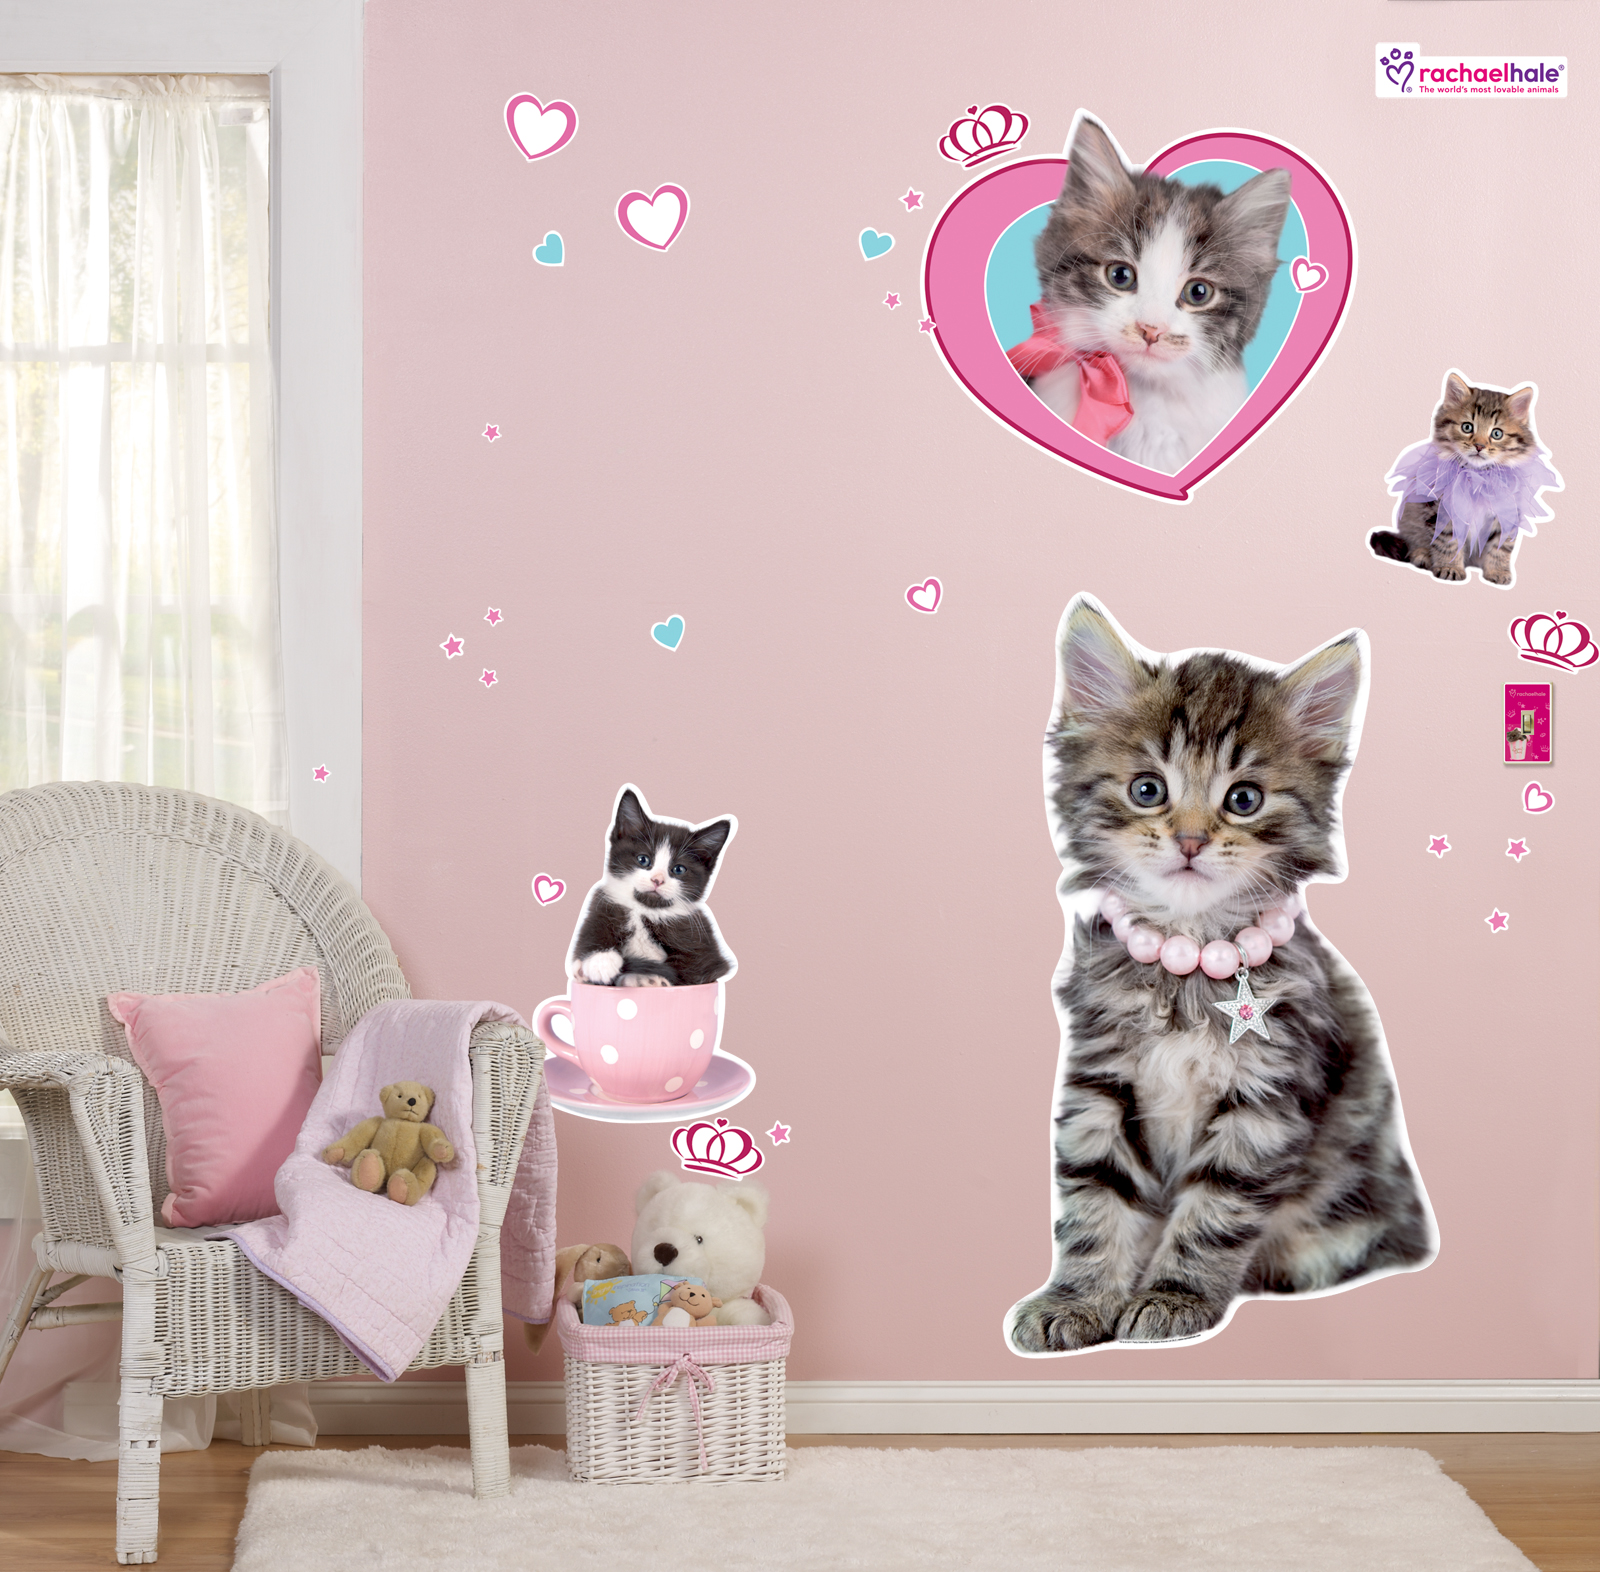 rachaelhale glamour cats giant wall decals  birthdayexpresscom -